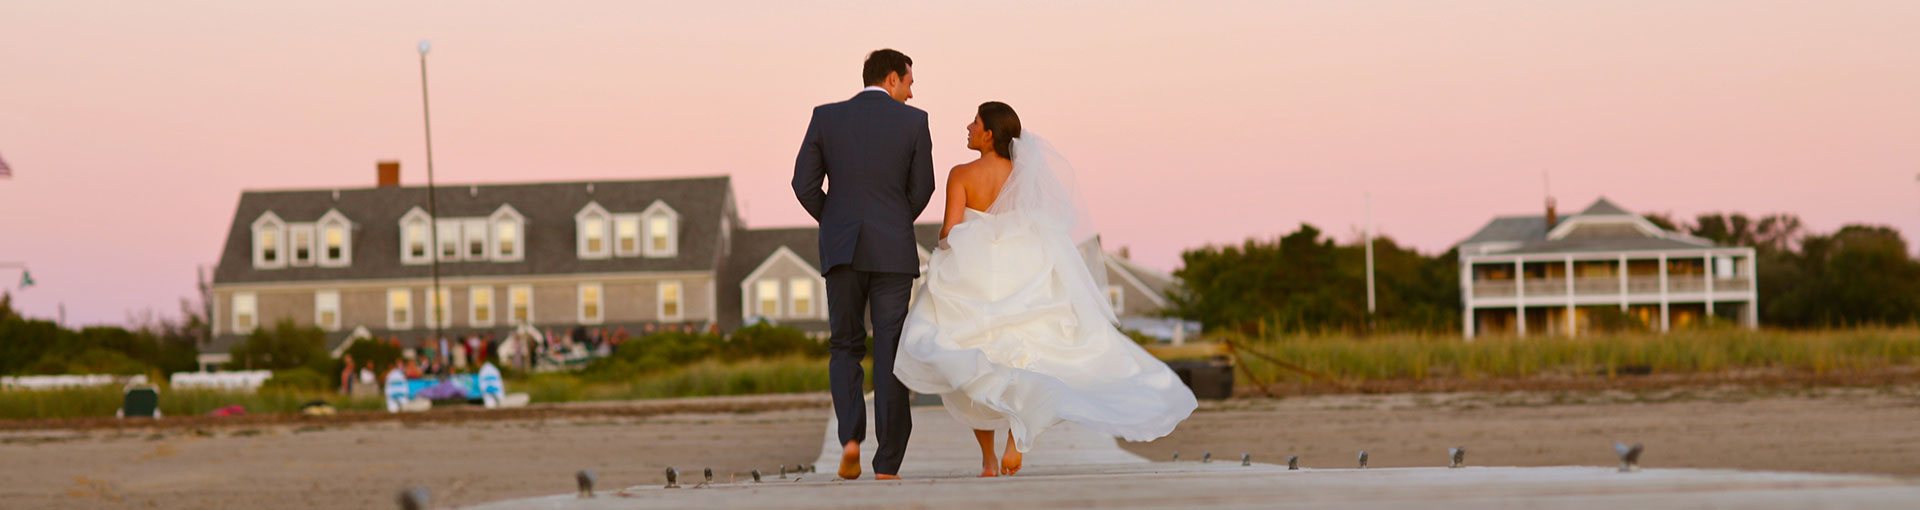 White Elephant Resorts, Nantucket Weddings Facilities